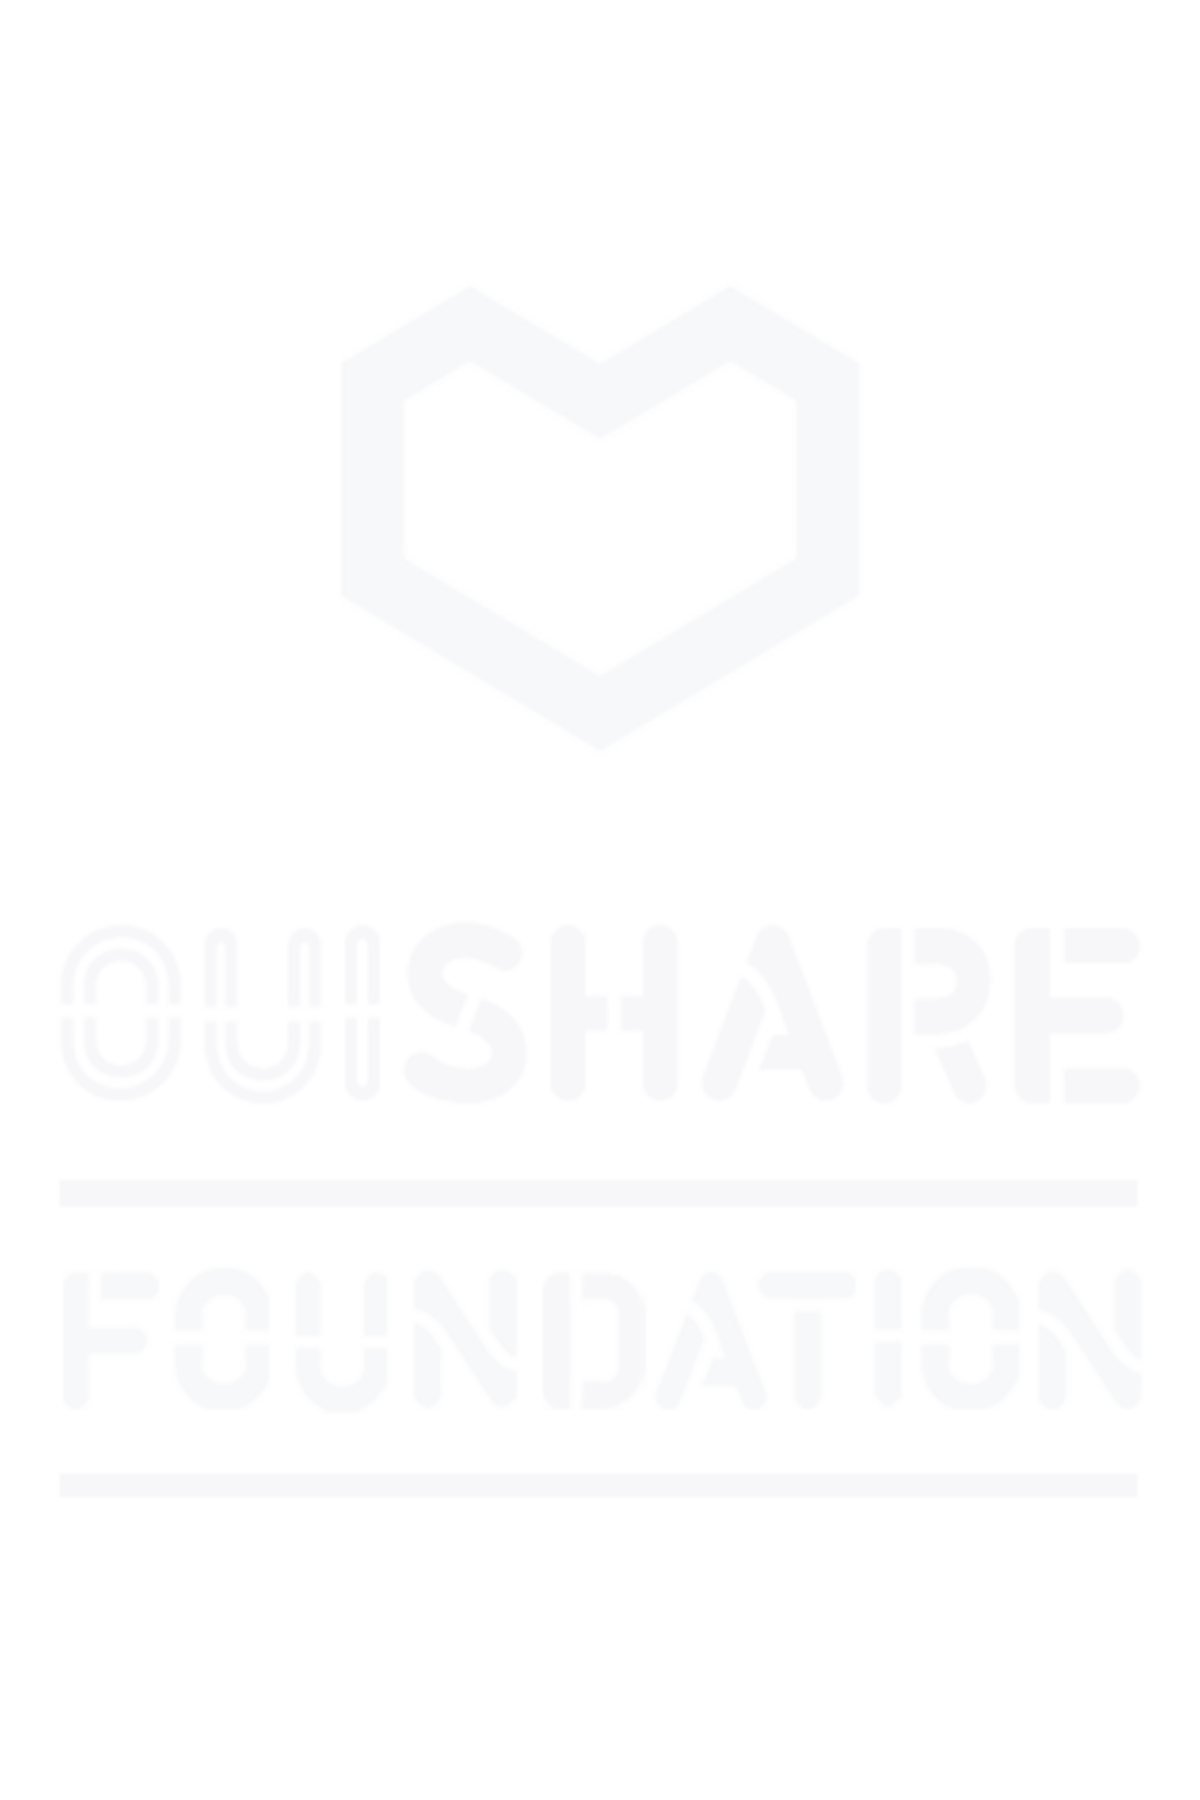 OuiShare Foundation